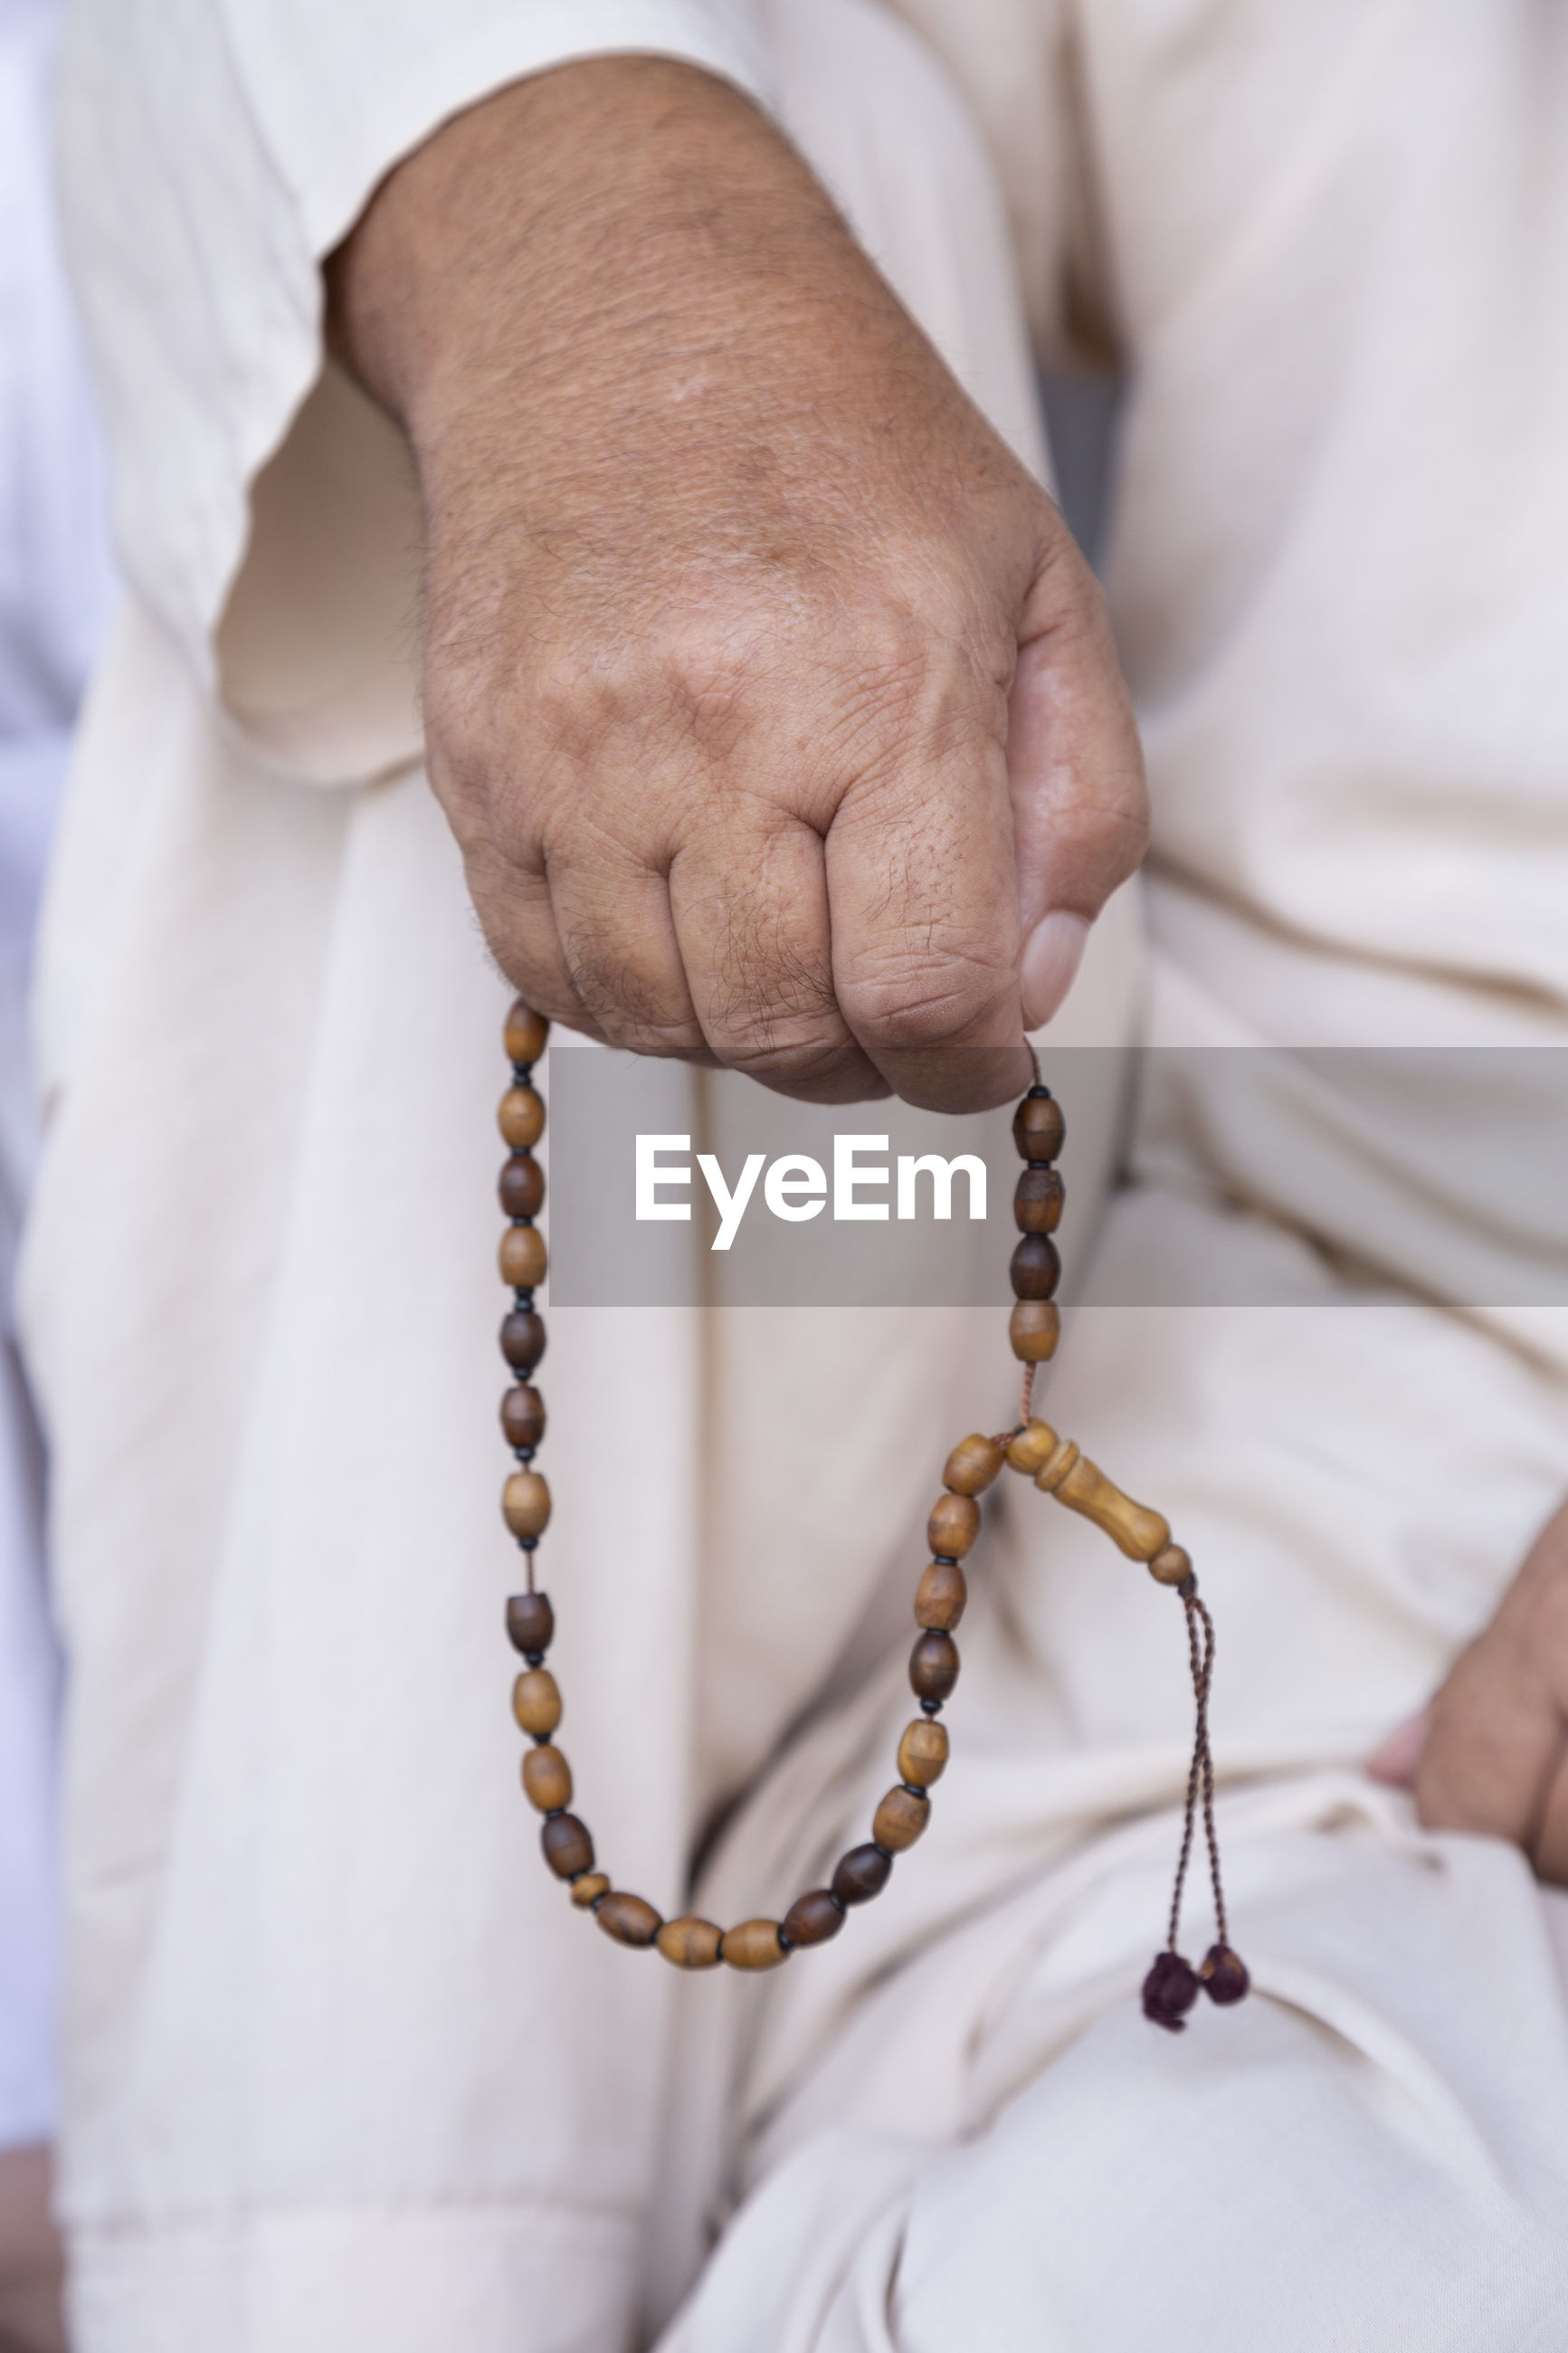 Midsection of man holding bead necklace while praying